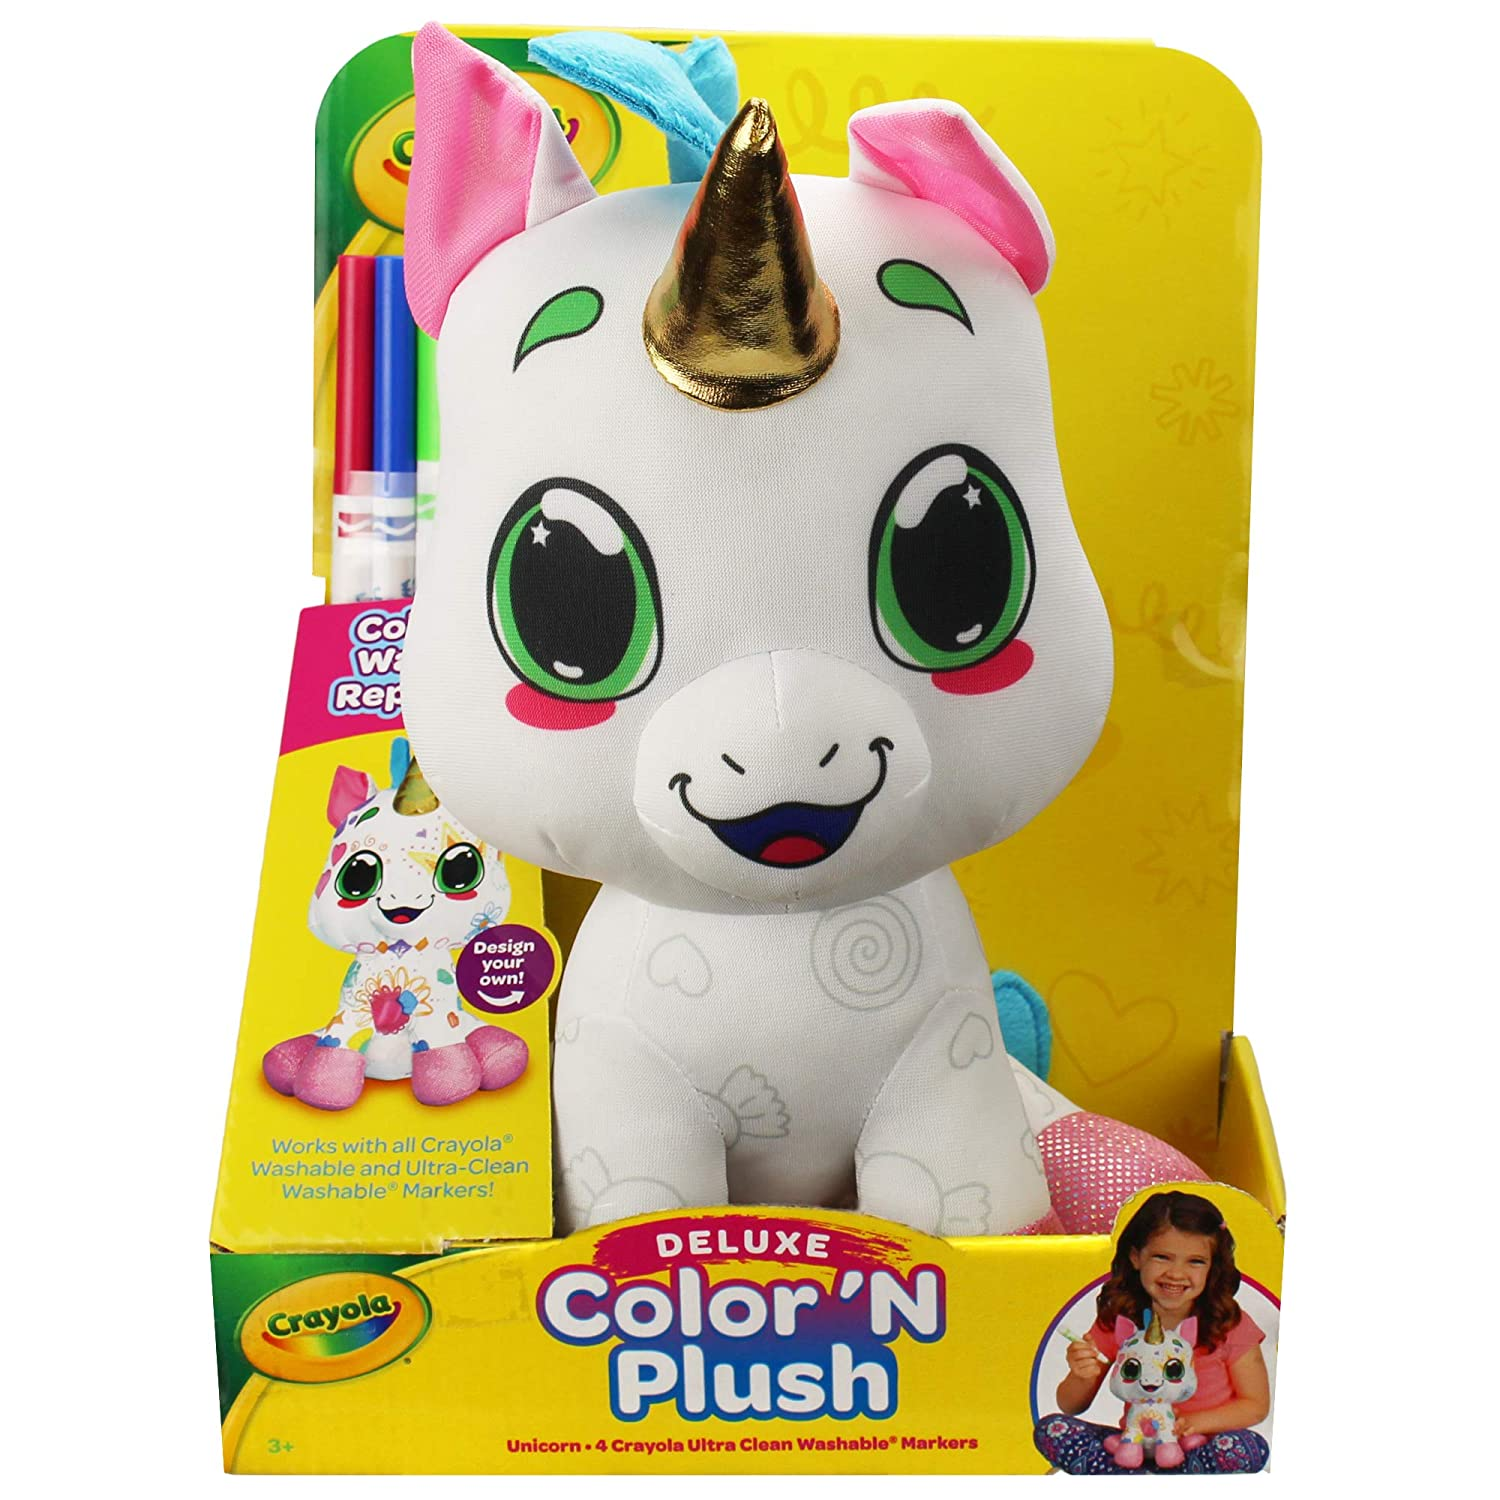 Crayola 12' Deluxe Color 'N Plush Unicorn - Draw, Wash Reuse